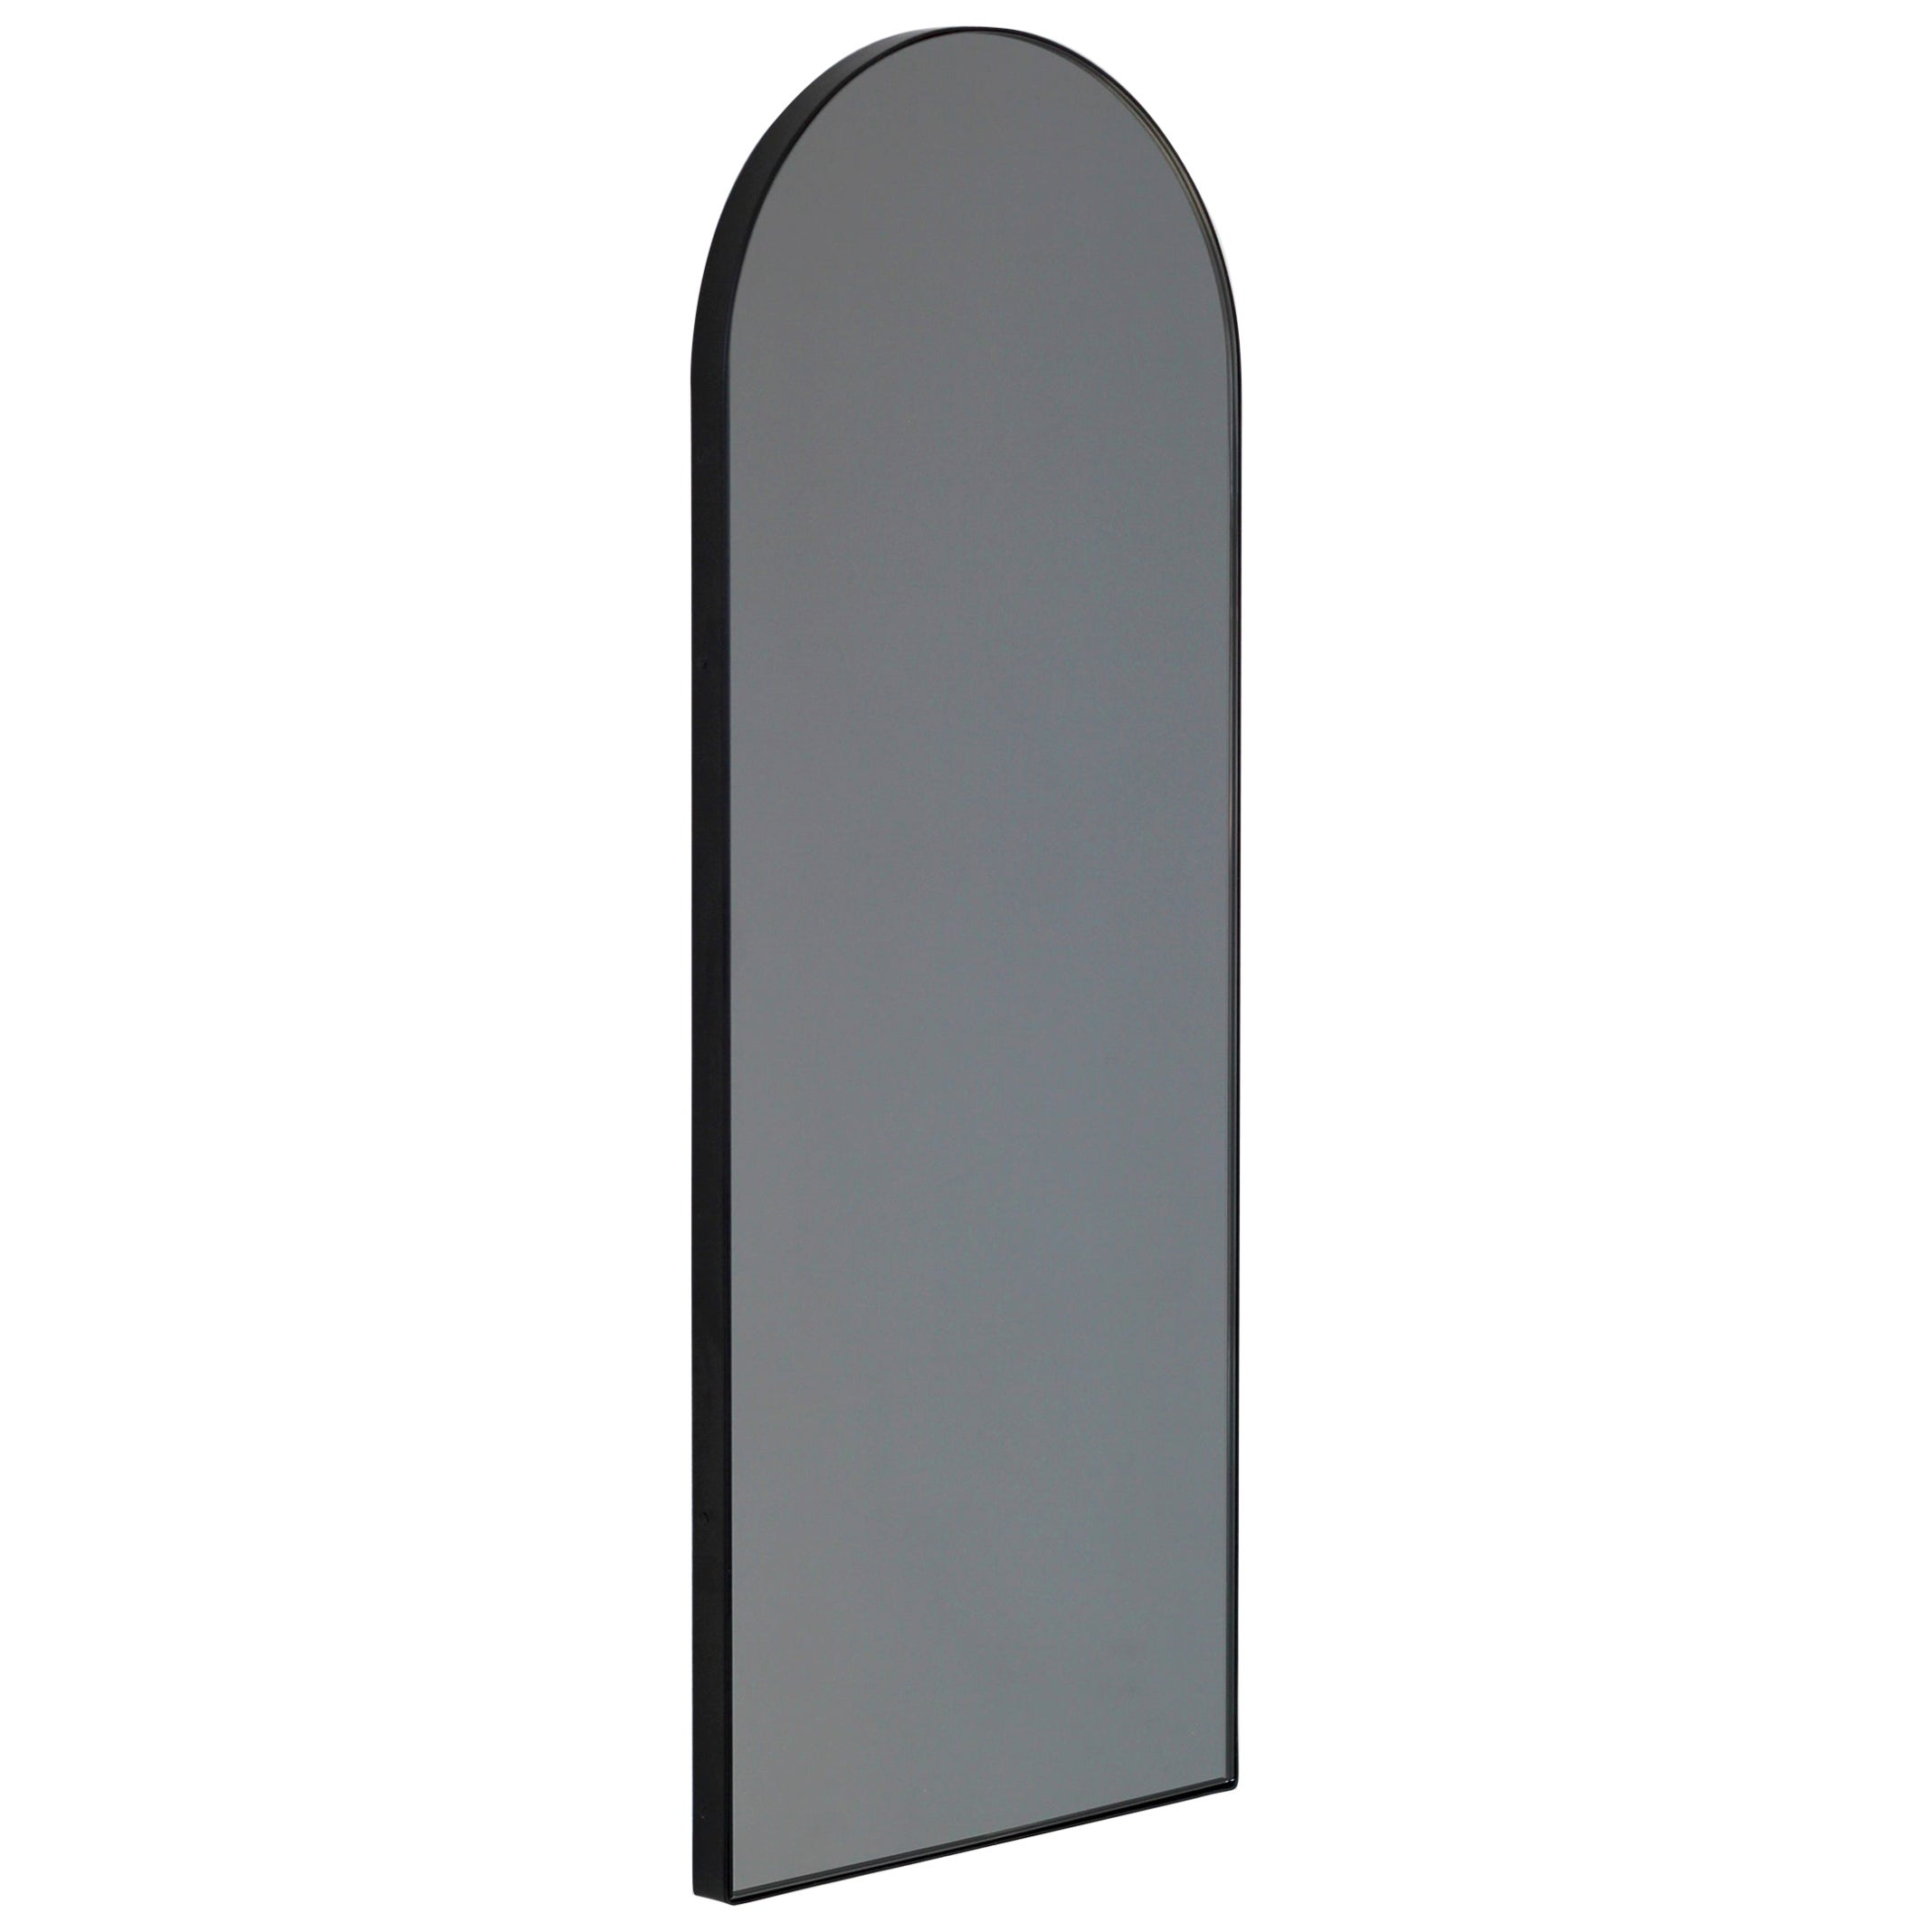 Arcus™ Arch shaped Black Tinted Art Deco Narrow Mirror with a Black Frame